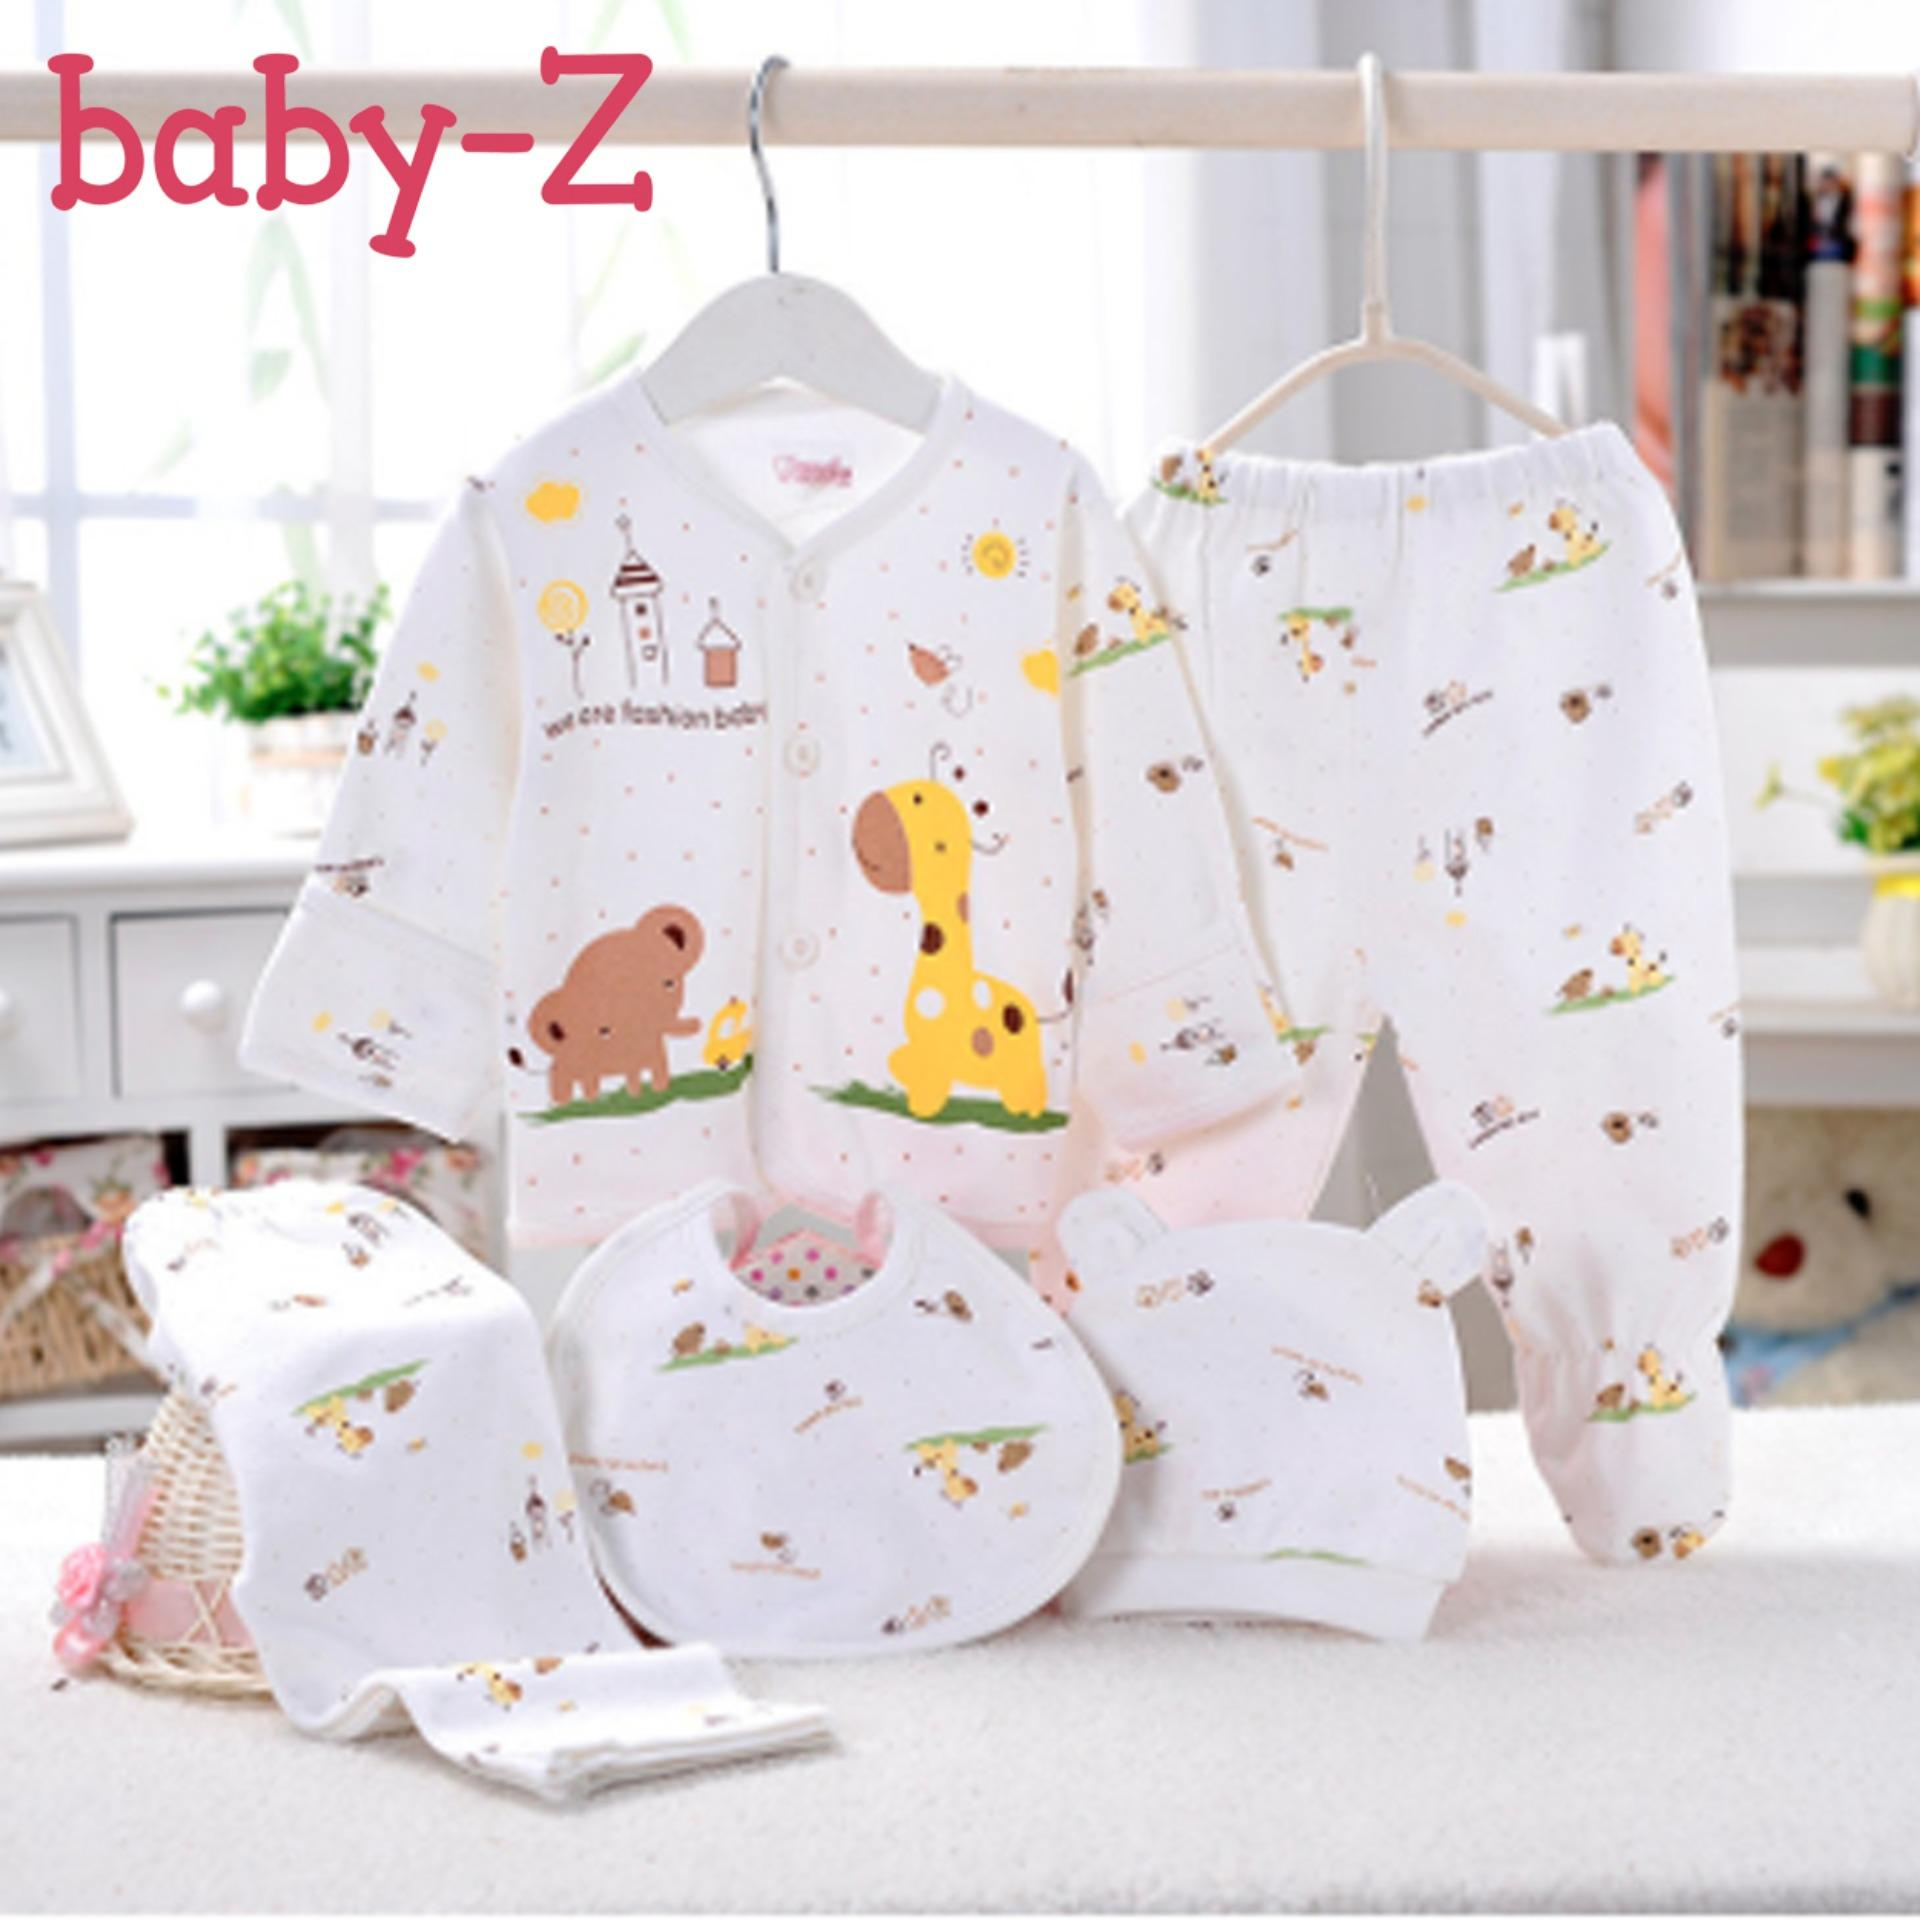 Baby-Z 5pcs Newborn Babies Cotton Underwear Cap Bib Long Sleeve Animal Print (Yellow